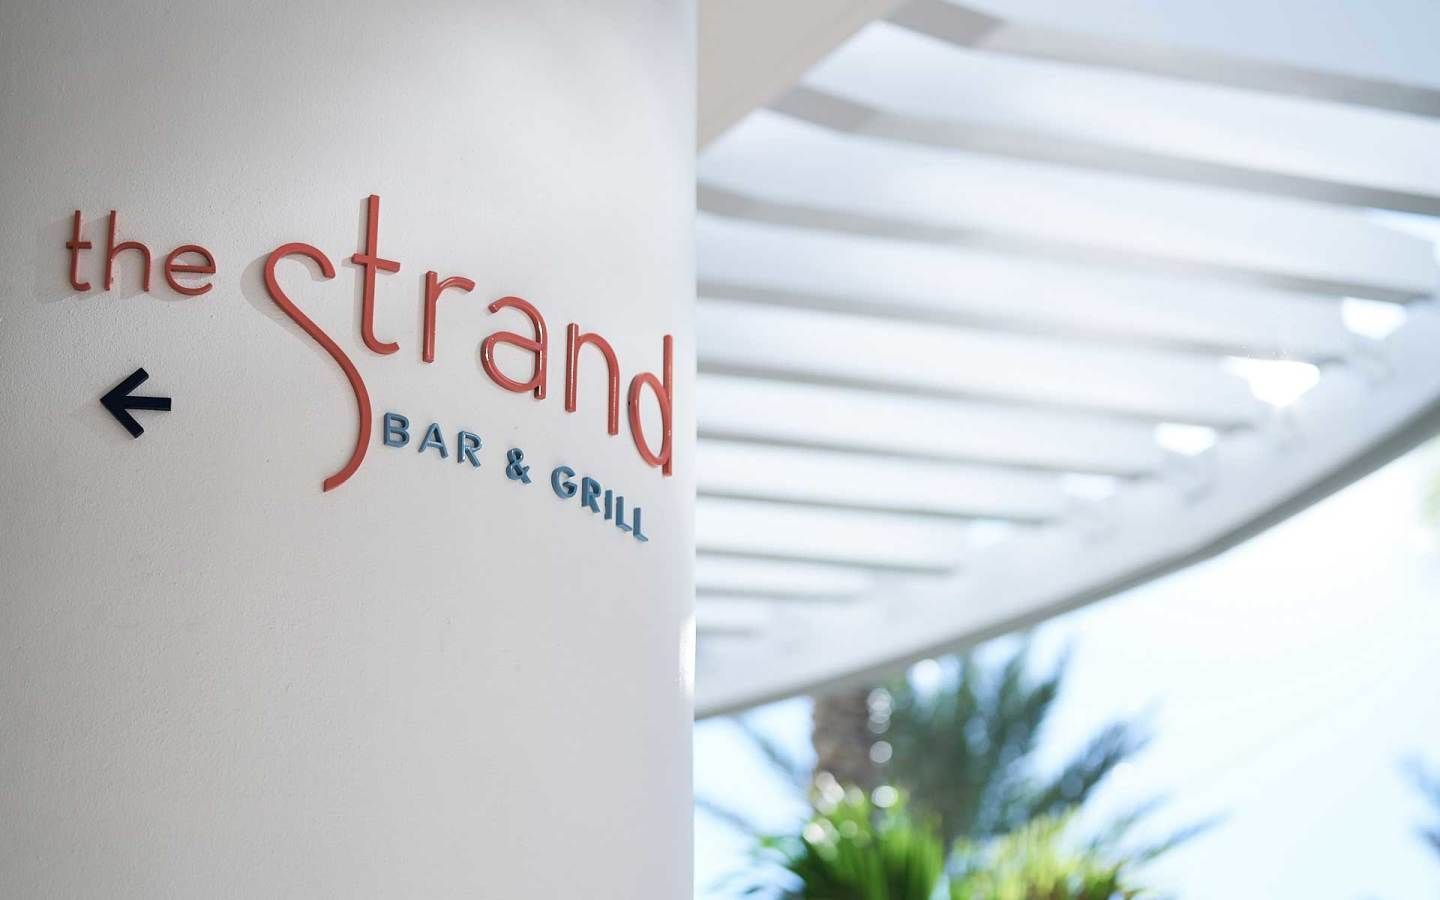 The Strand Bar & Grill